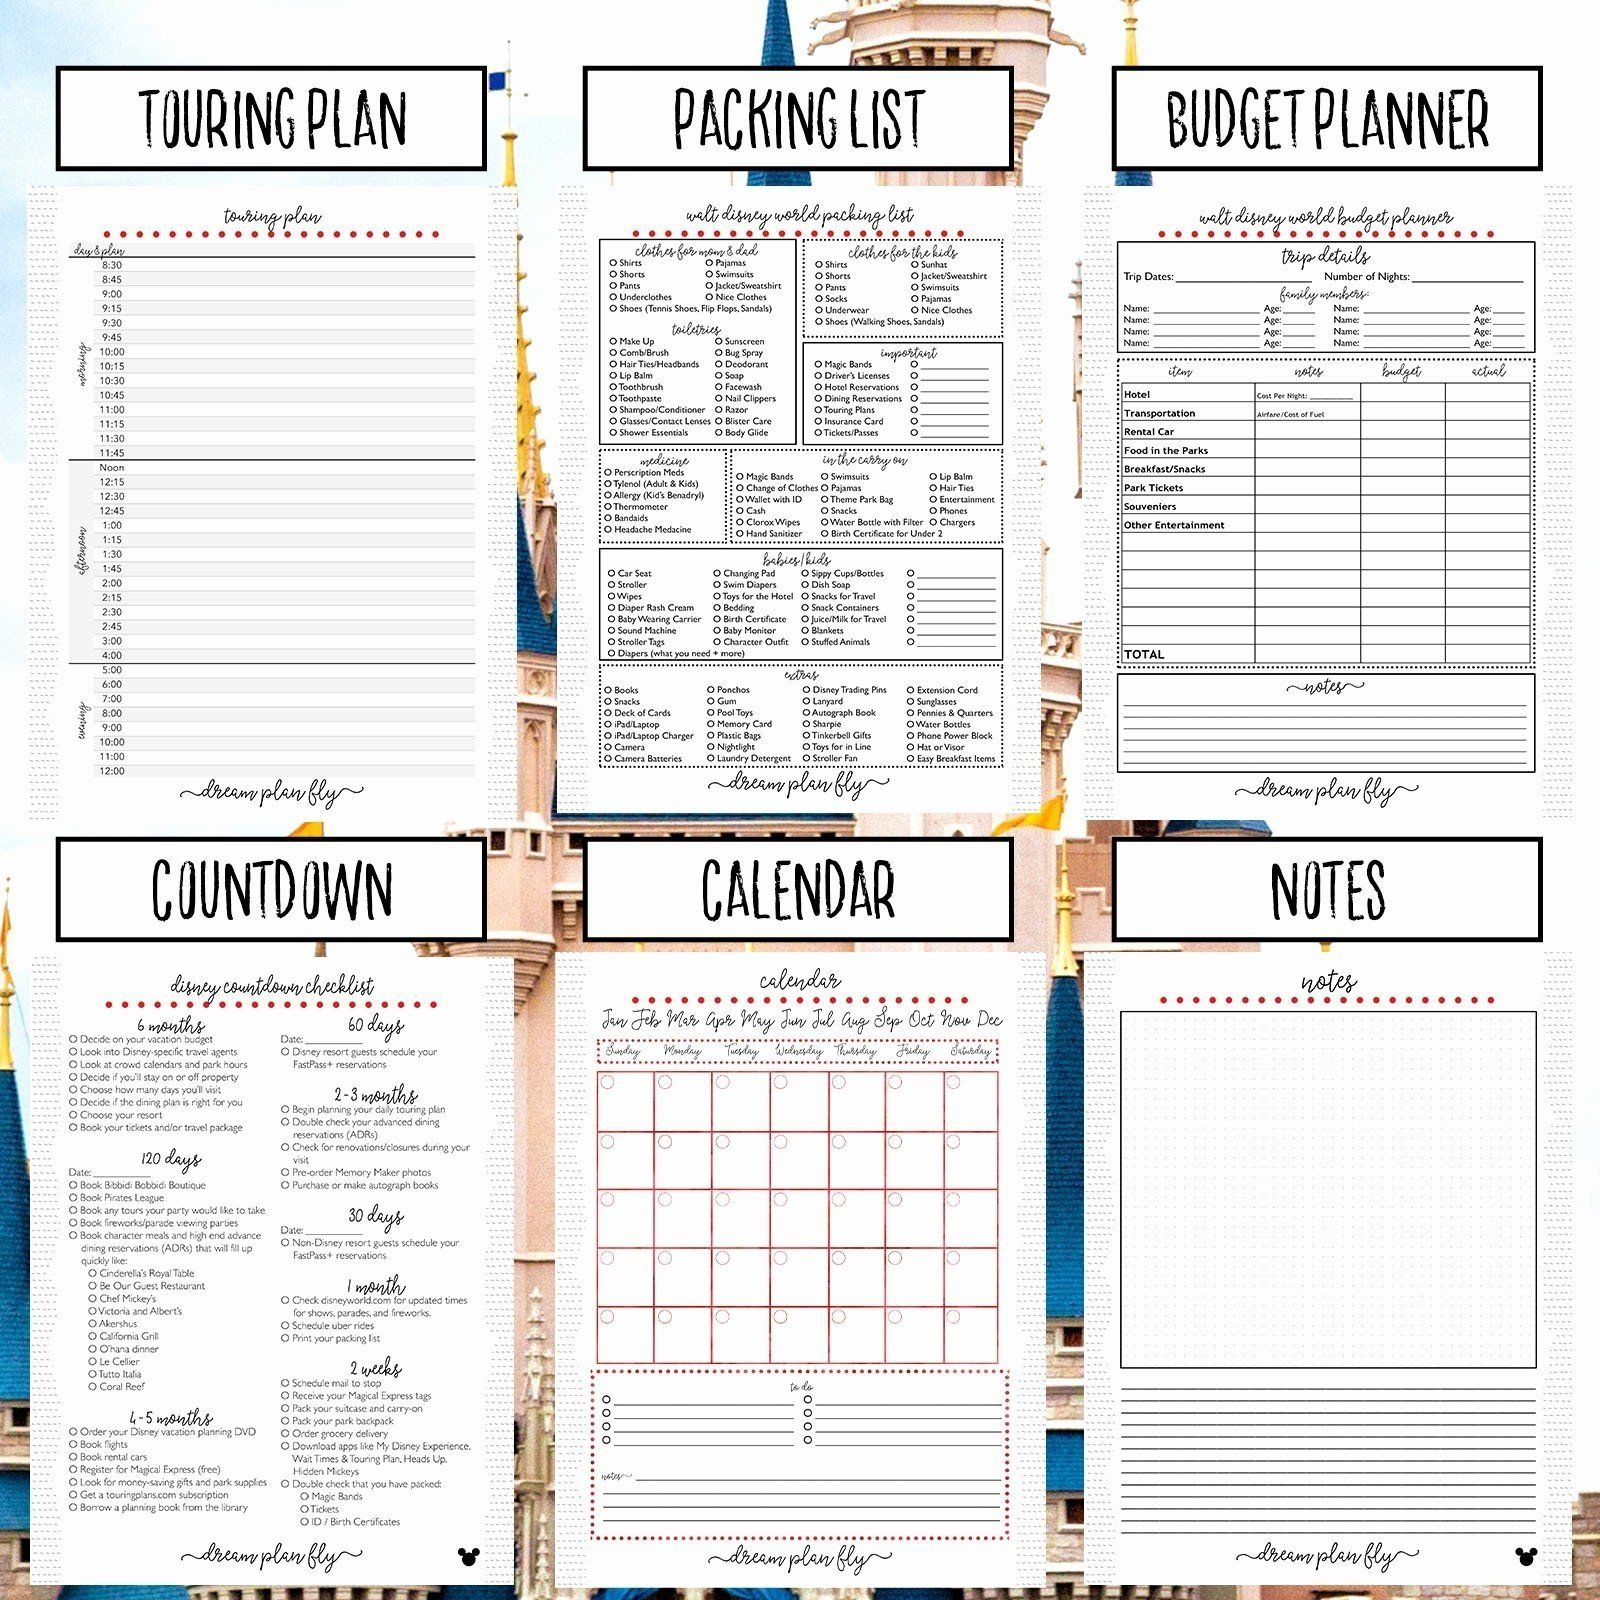 Sales Daily Planner Template Best Of Visit Schedule Template Excel Site Agenda Sales Call Plan Itinerary Planner Travel Itinerary Template Itinerary Template